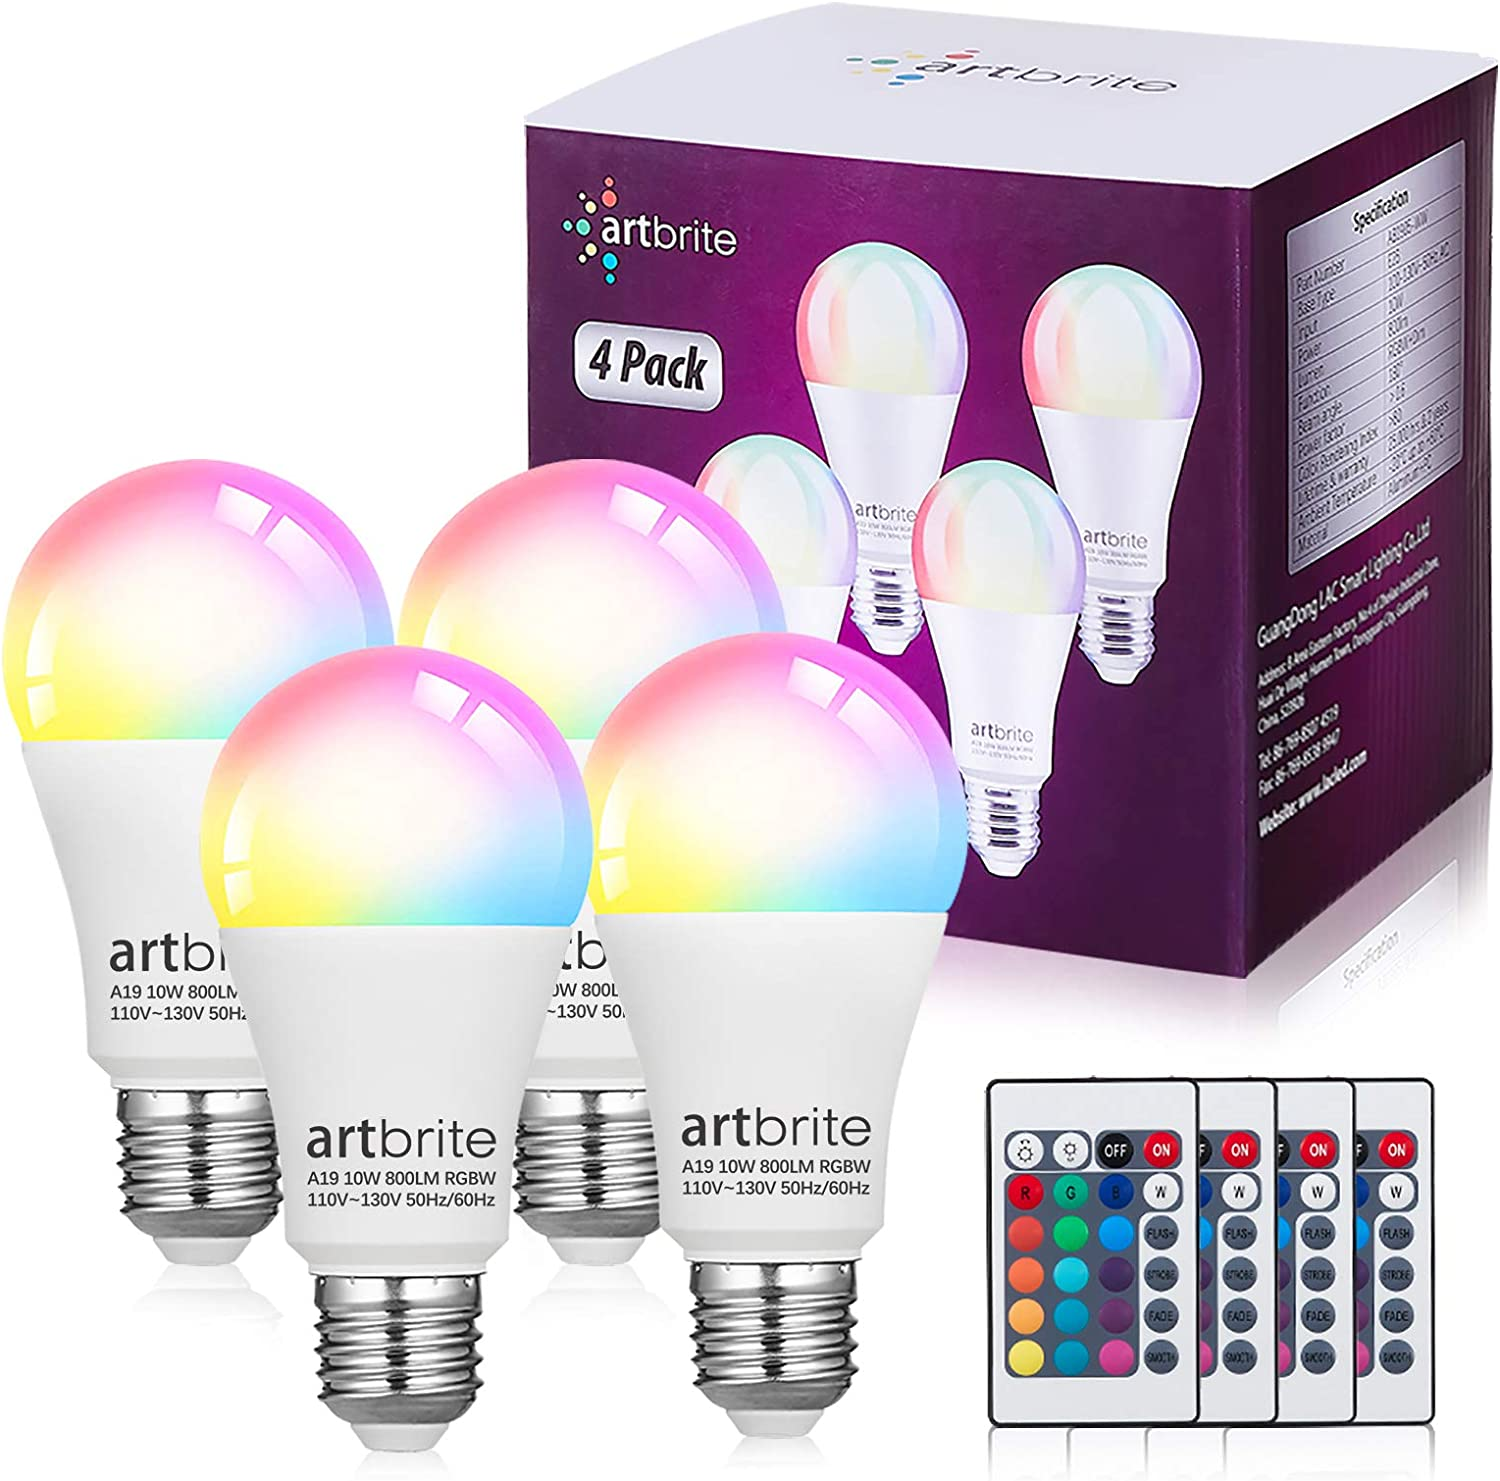 artbrite Color Changing Light Bulb with Remote Control, Dimmable E26 LED Light Bulb, 60 Watt Equivalent, 3000K Warm White, RGB Decorative Lighting for Home, Bedroom, Stage, Party and More.(4 Pack)